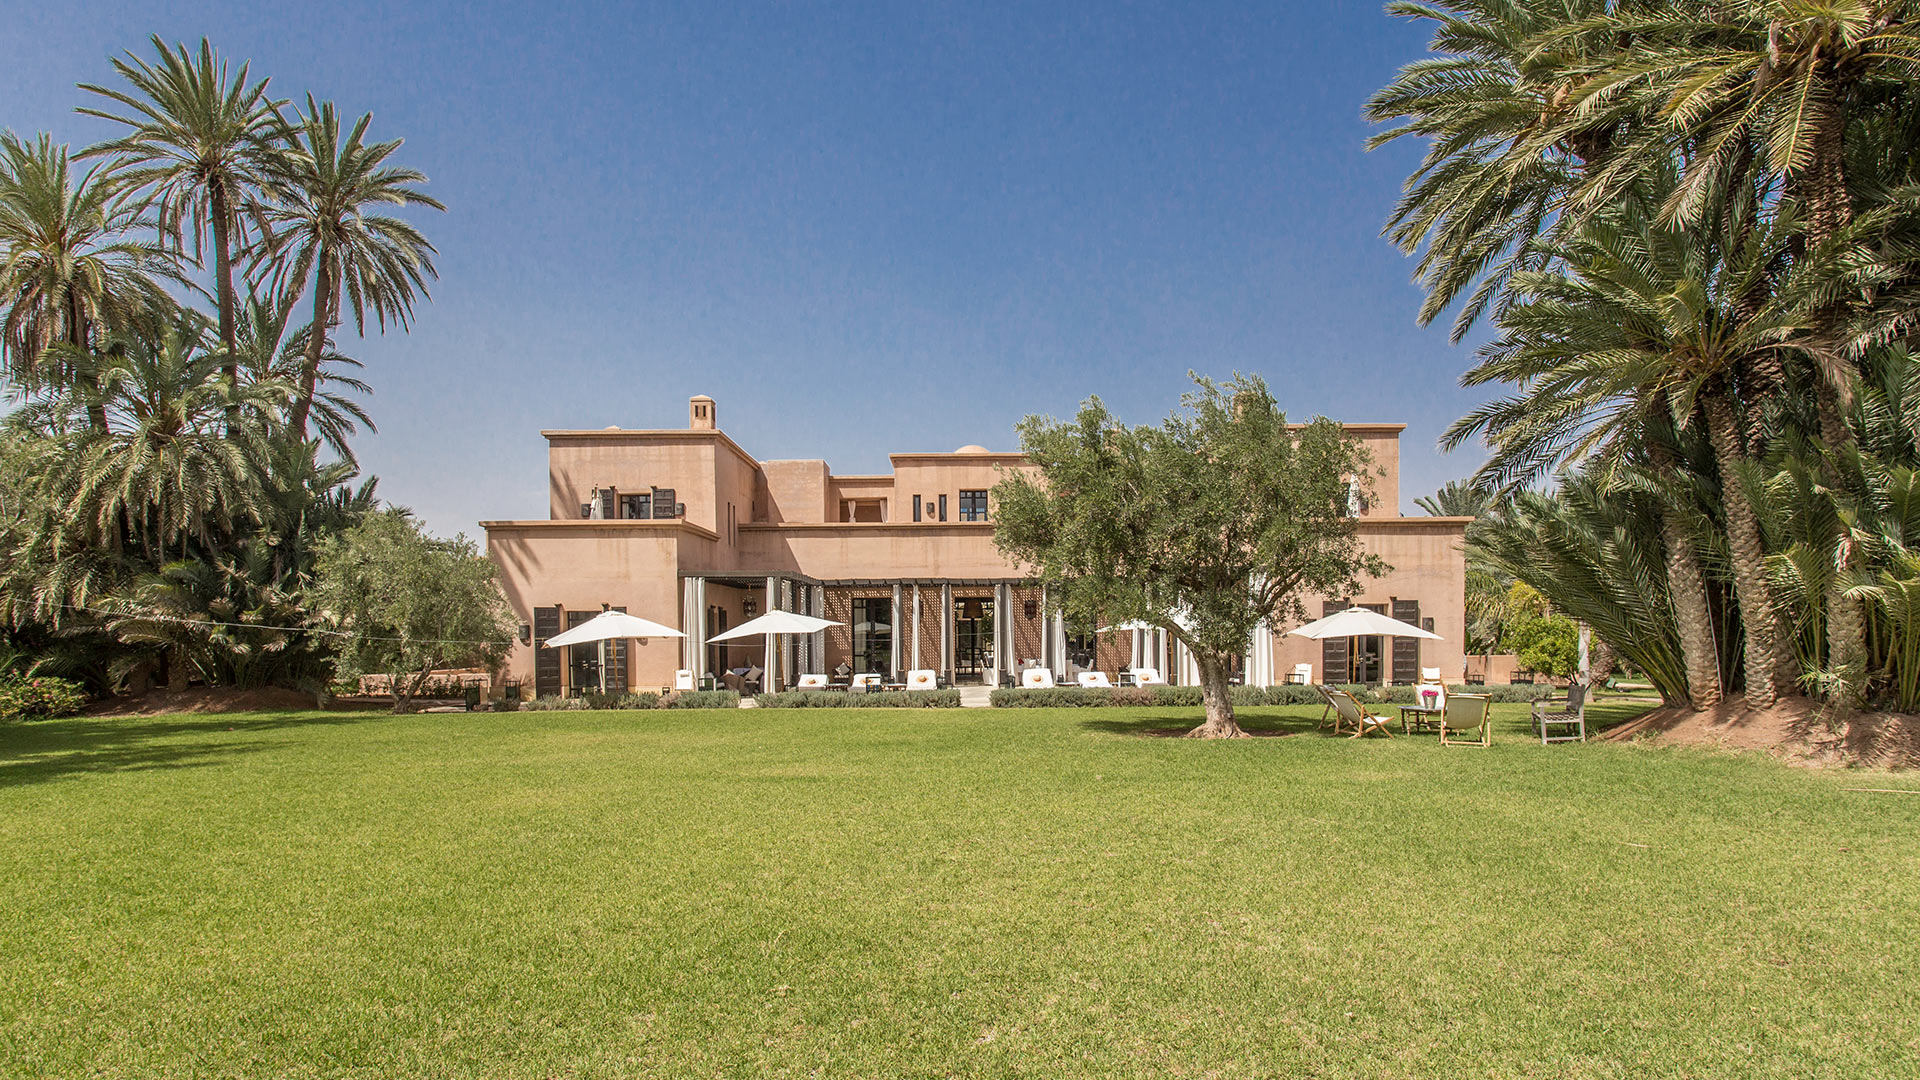 Villa El Jenna, Location à Marrakech